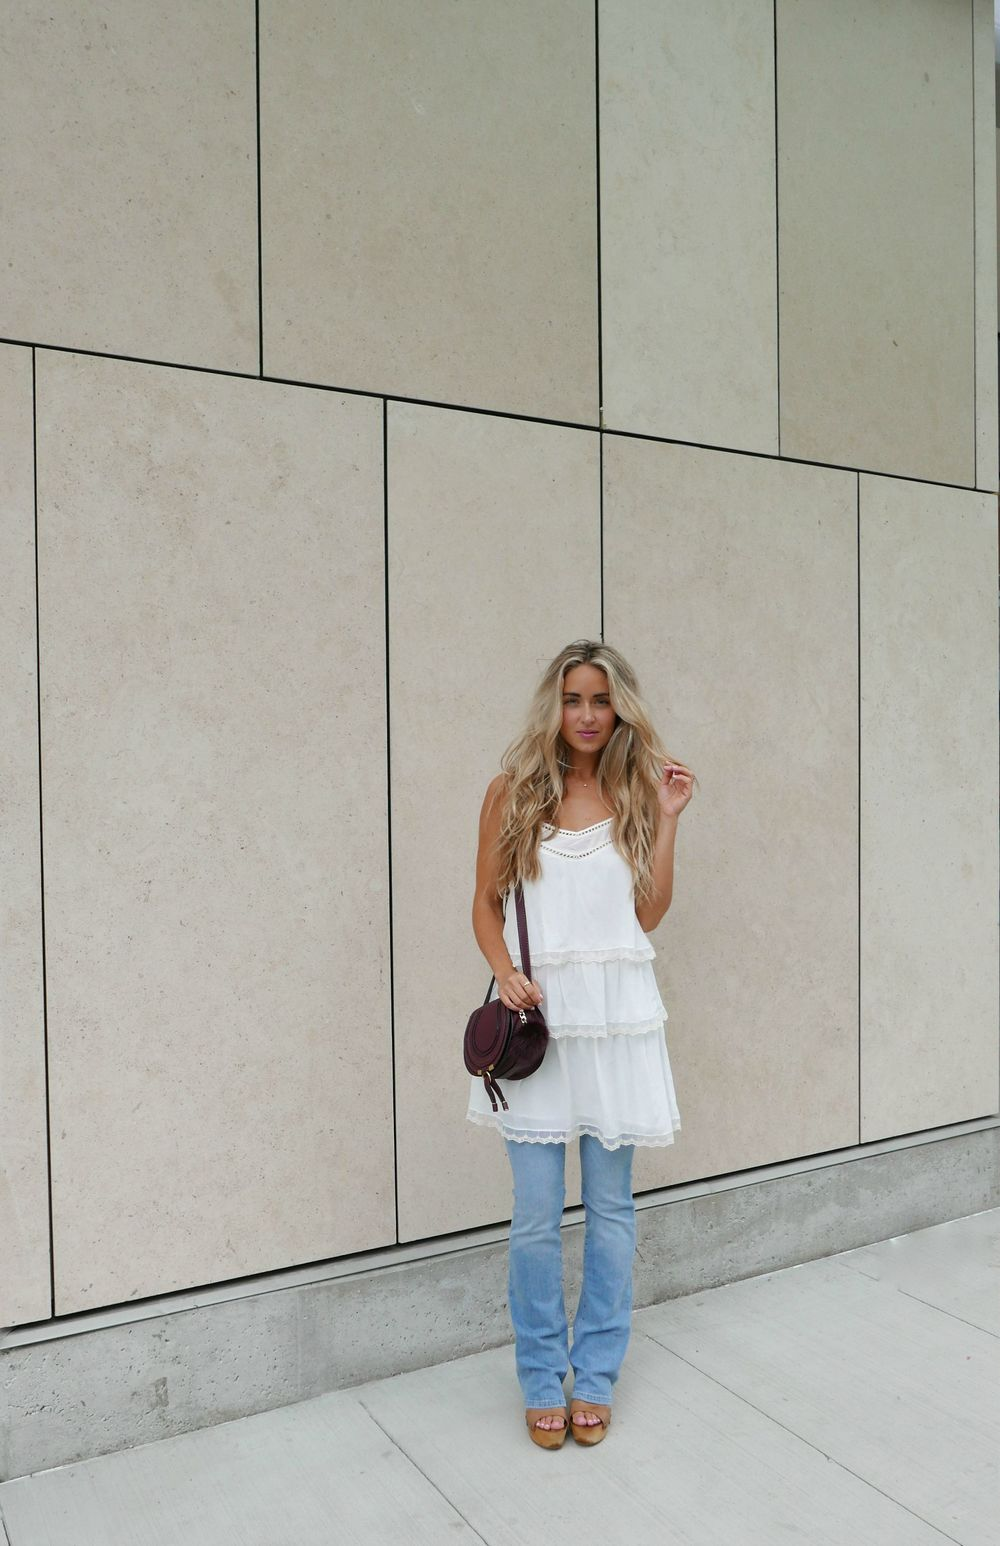 Anine Bing  Dress,  F21   Jeans ,  Chloé  Bag via  MonnierFreres,   Ash  Shoes,